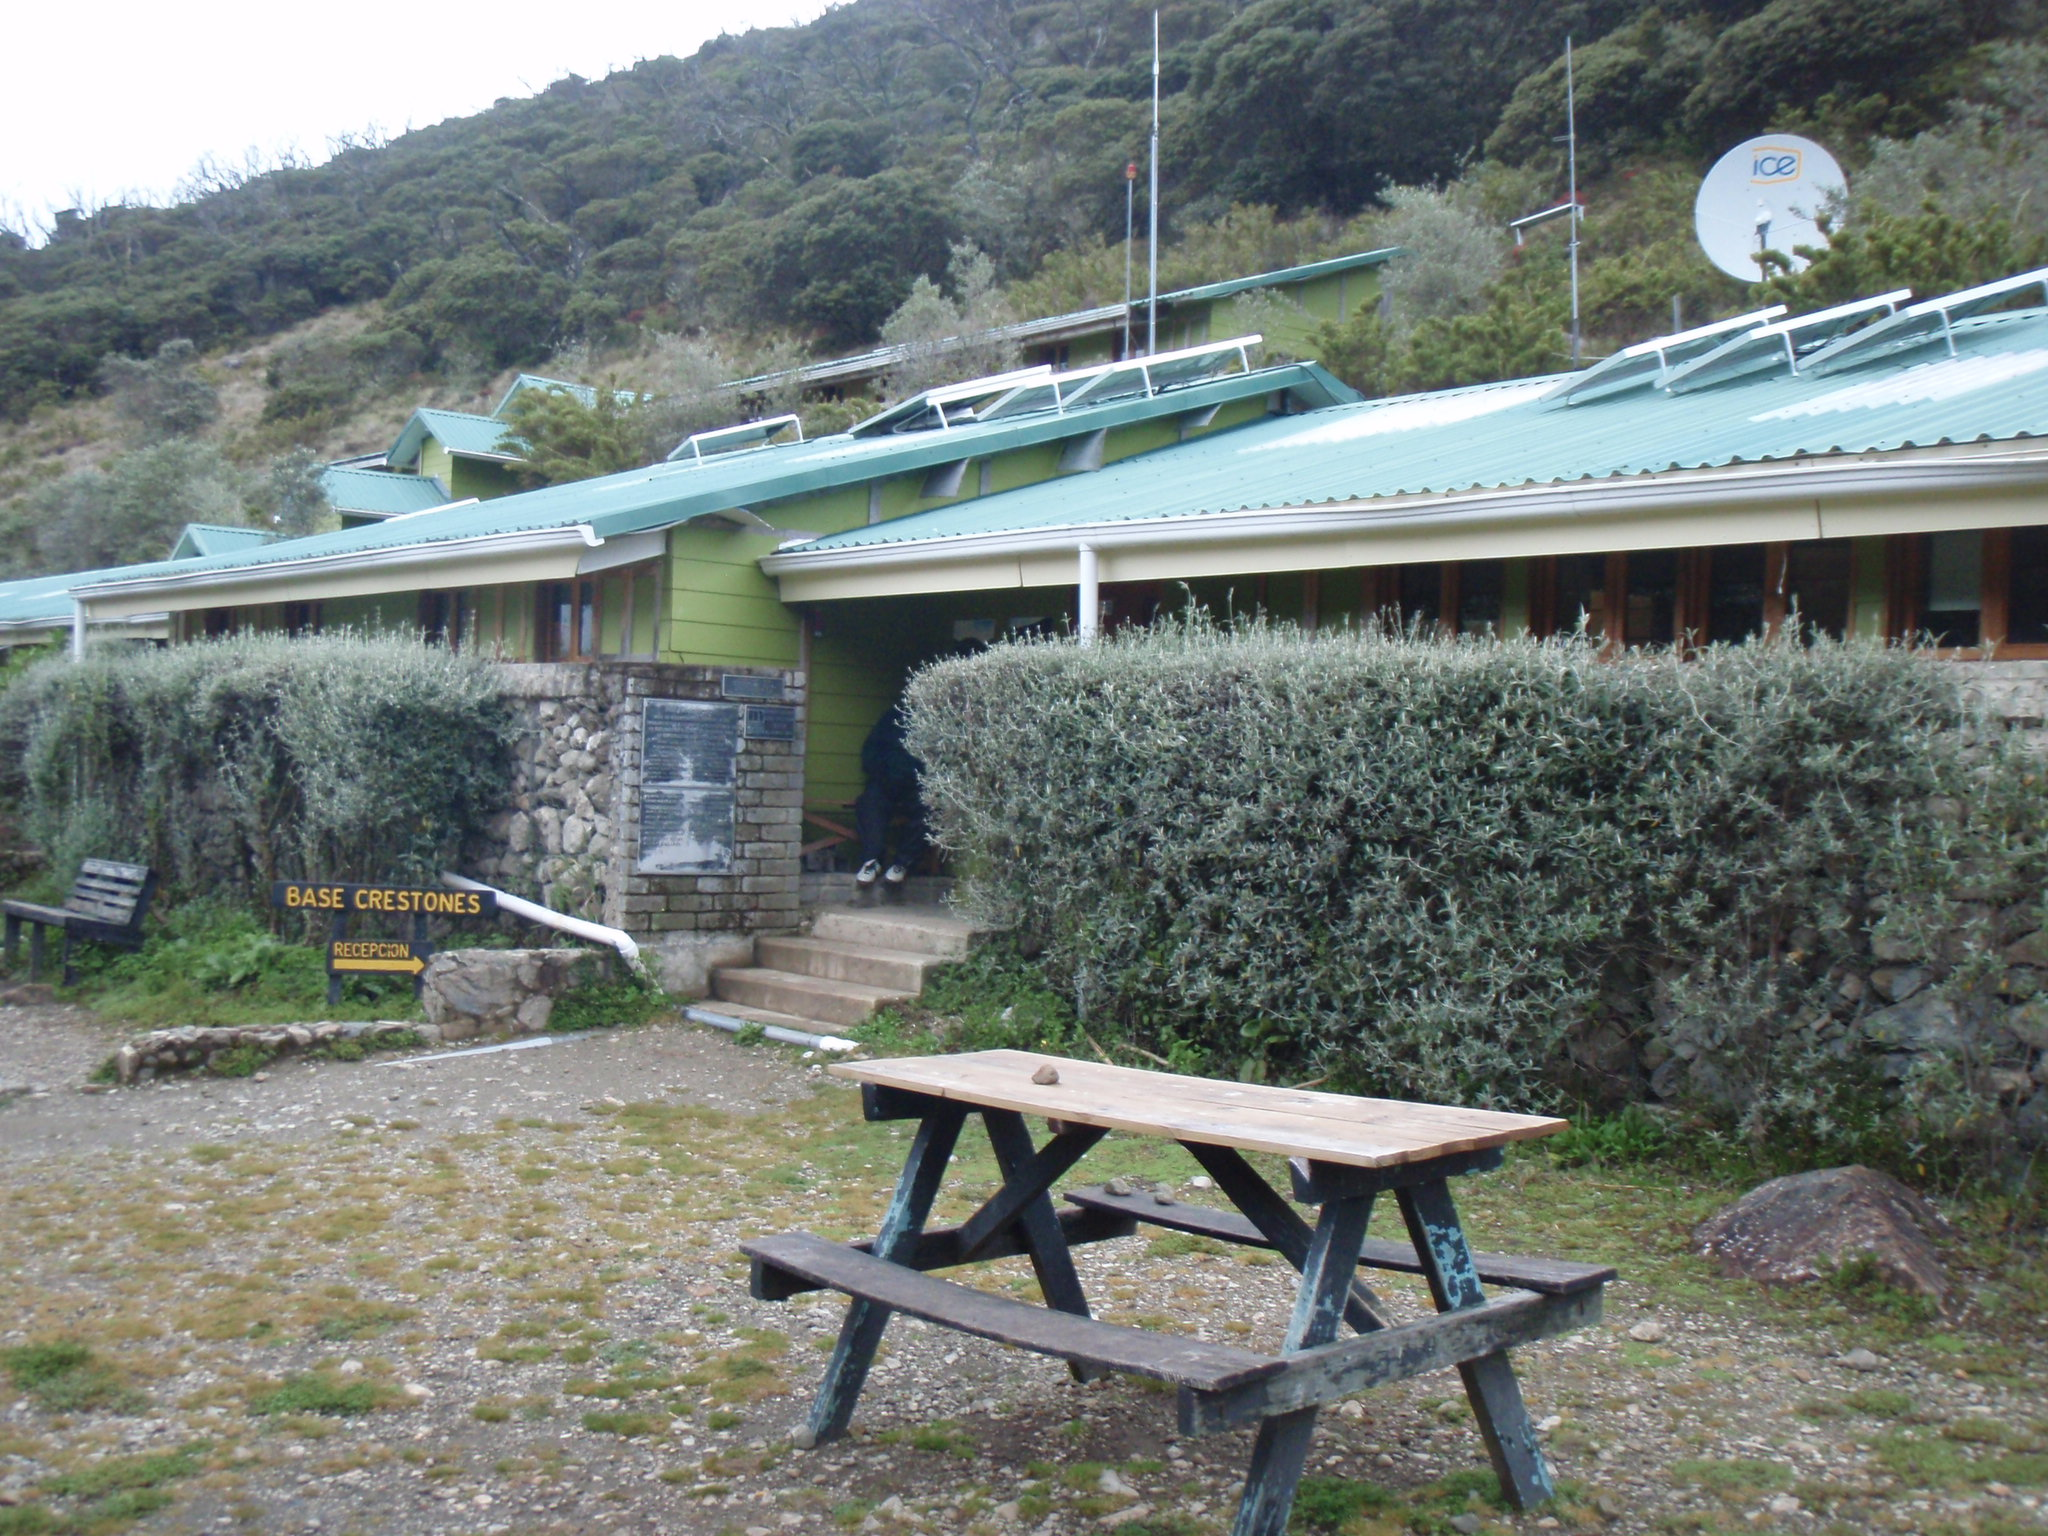 At the Base Crestones hut on Chirripo